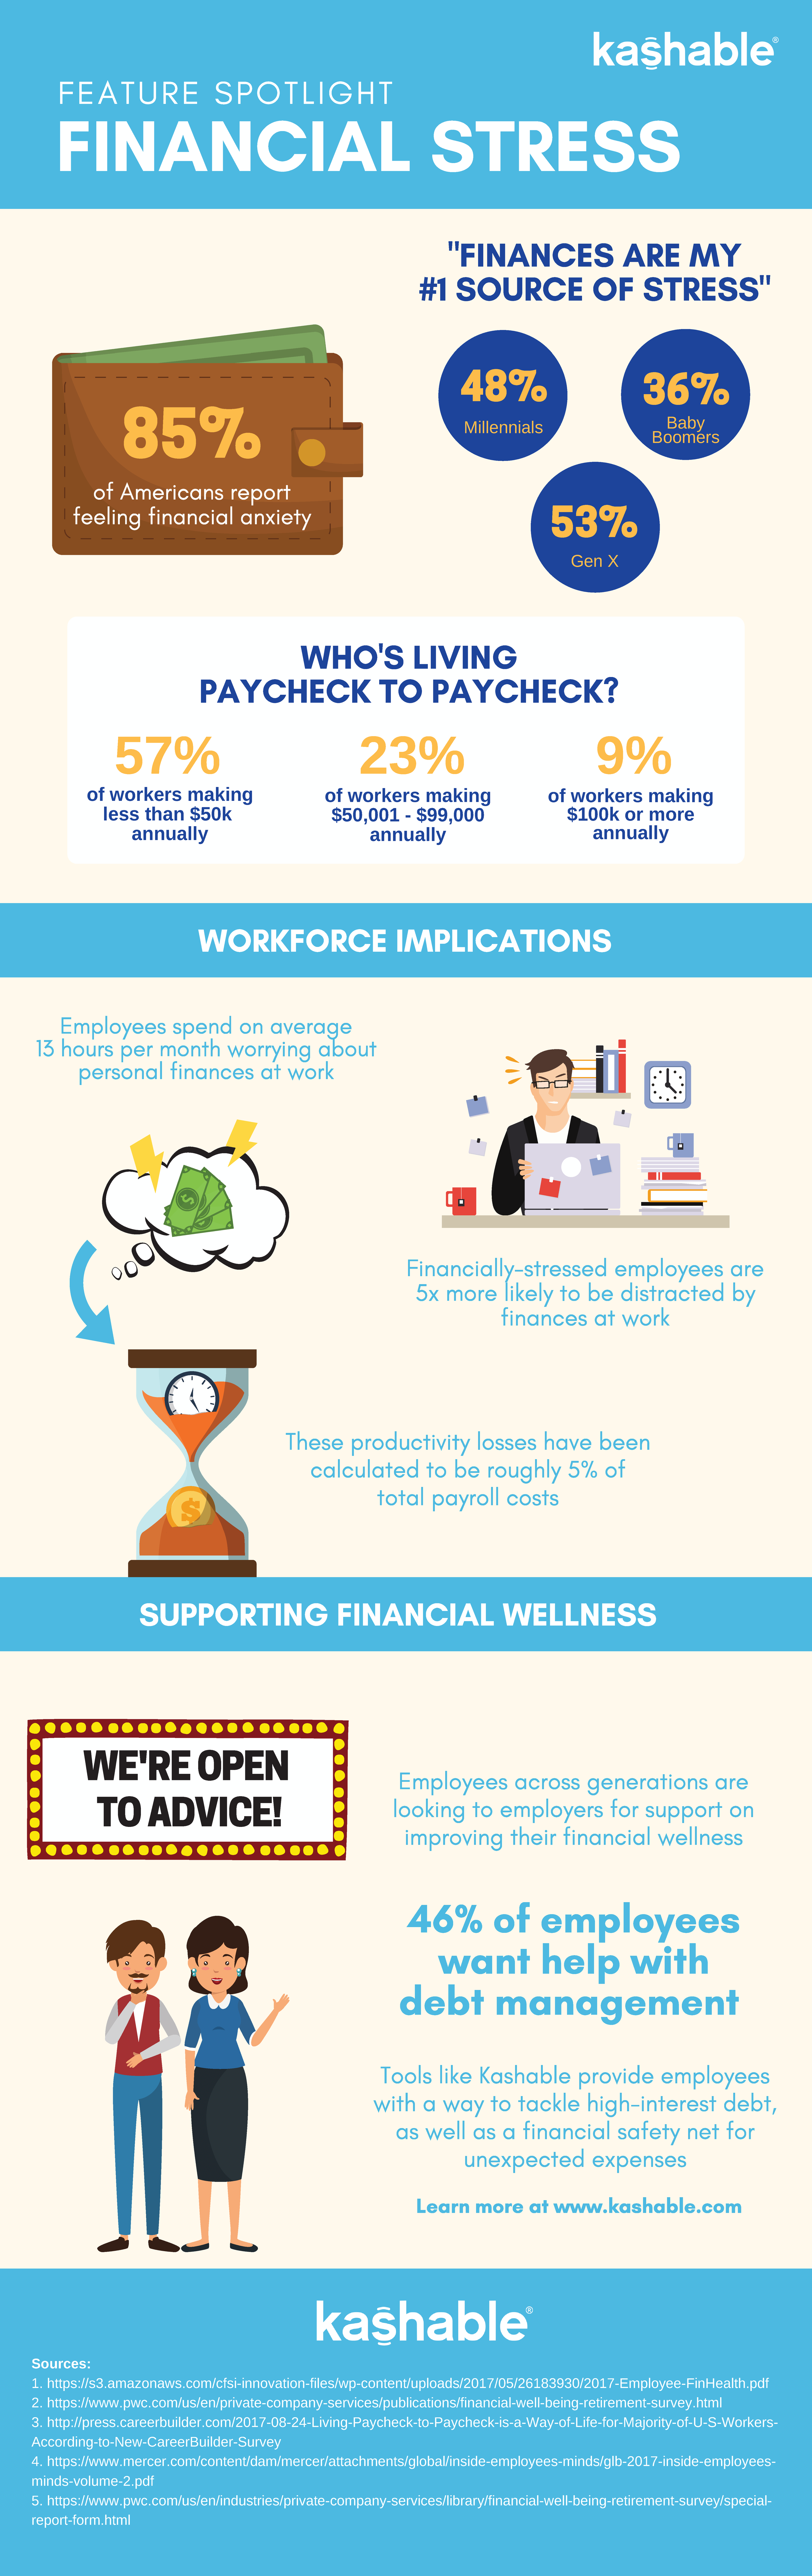 Employee Financial Stress in the Workplace Stats